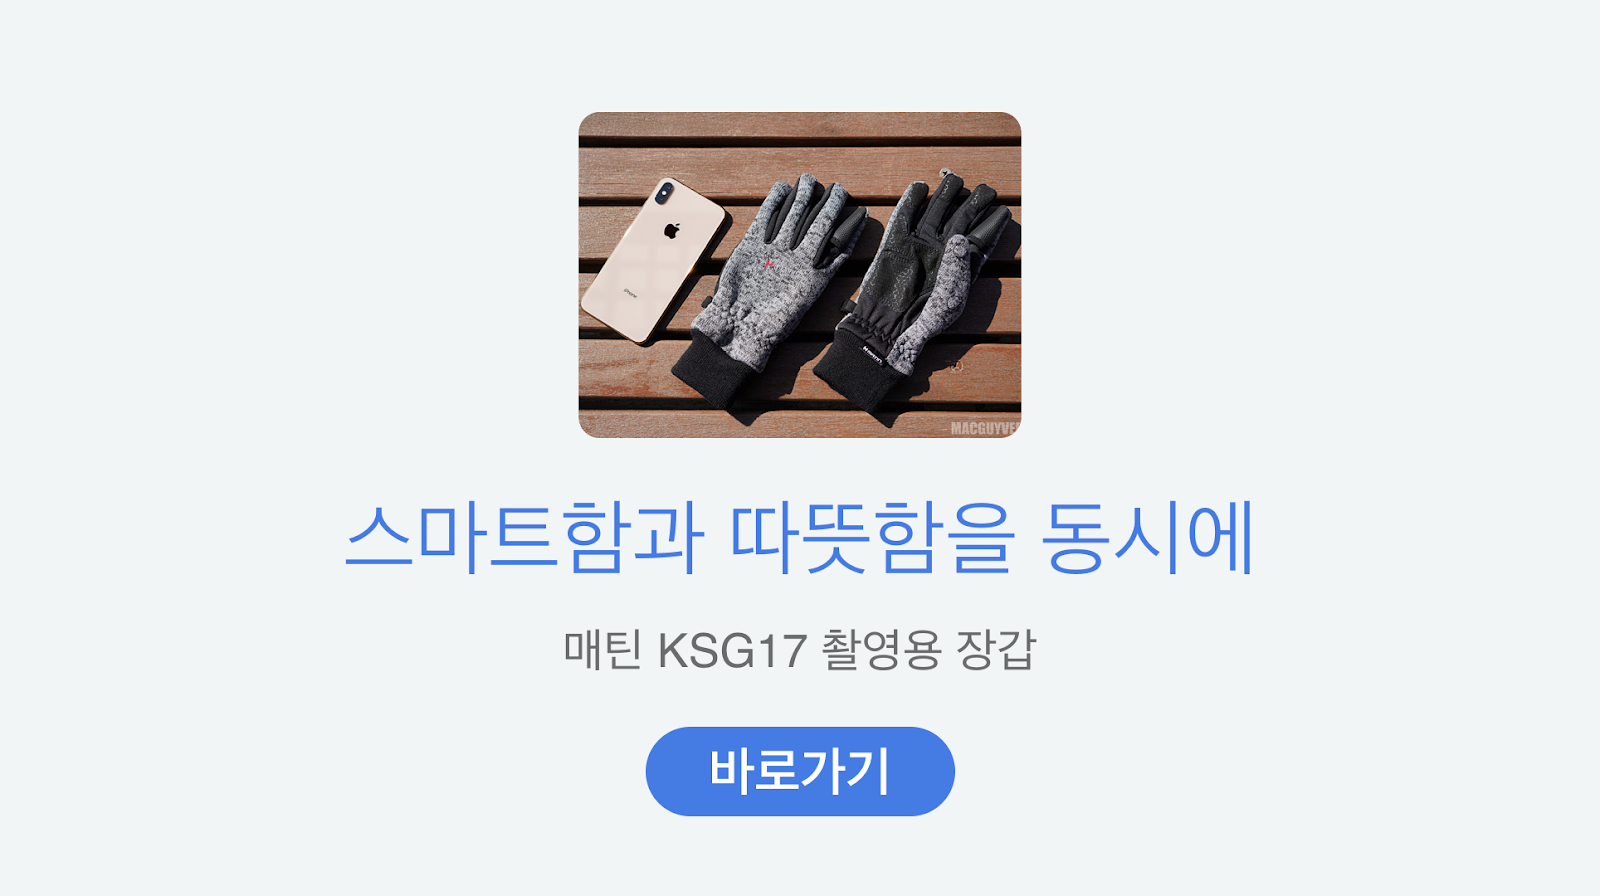 http://matin-s.co.kr/product/detail.html?product_no=2738&cate_no=311&display_group=1